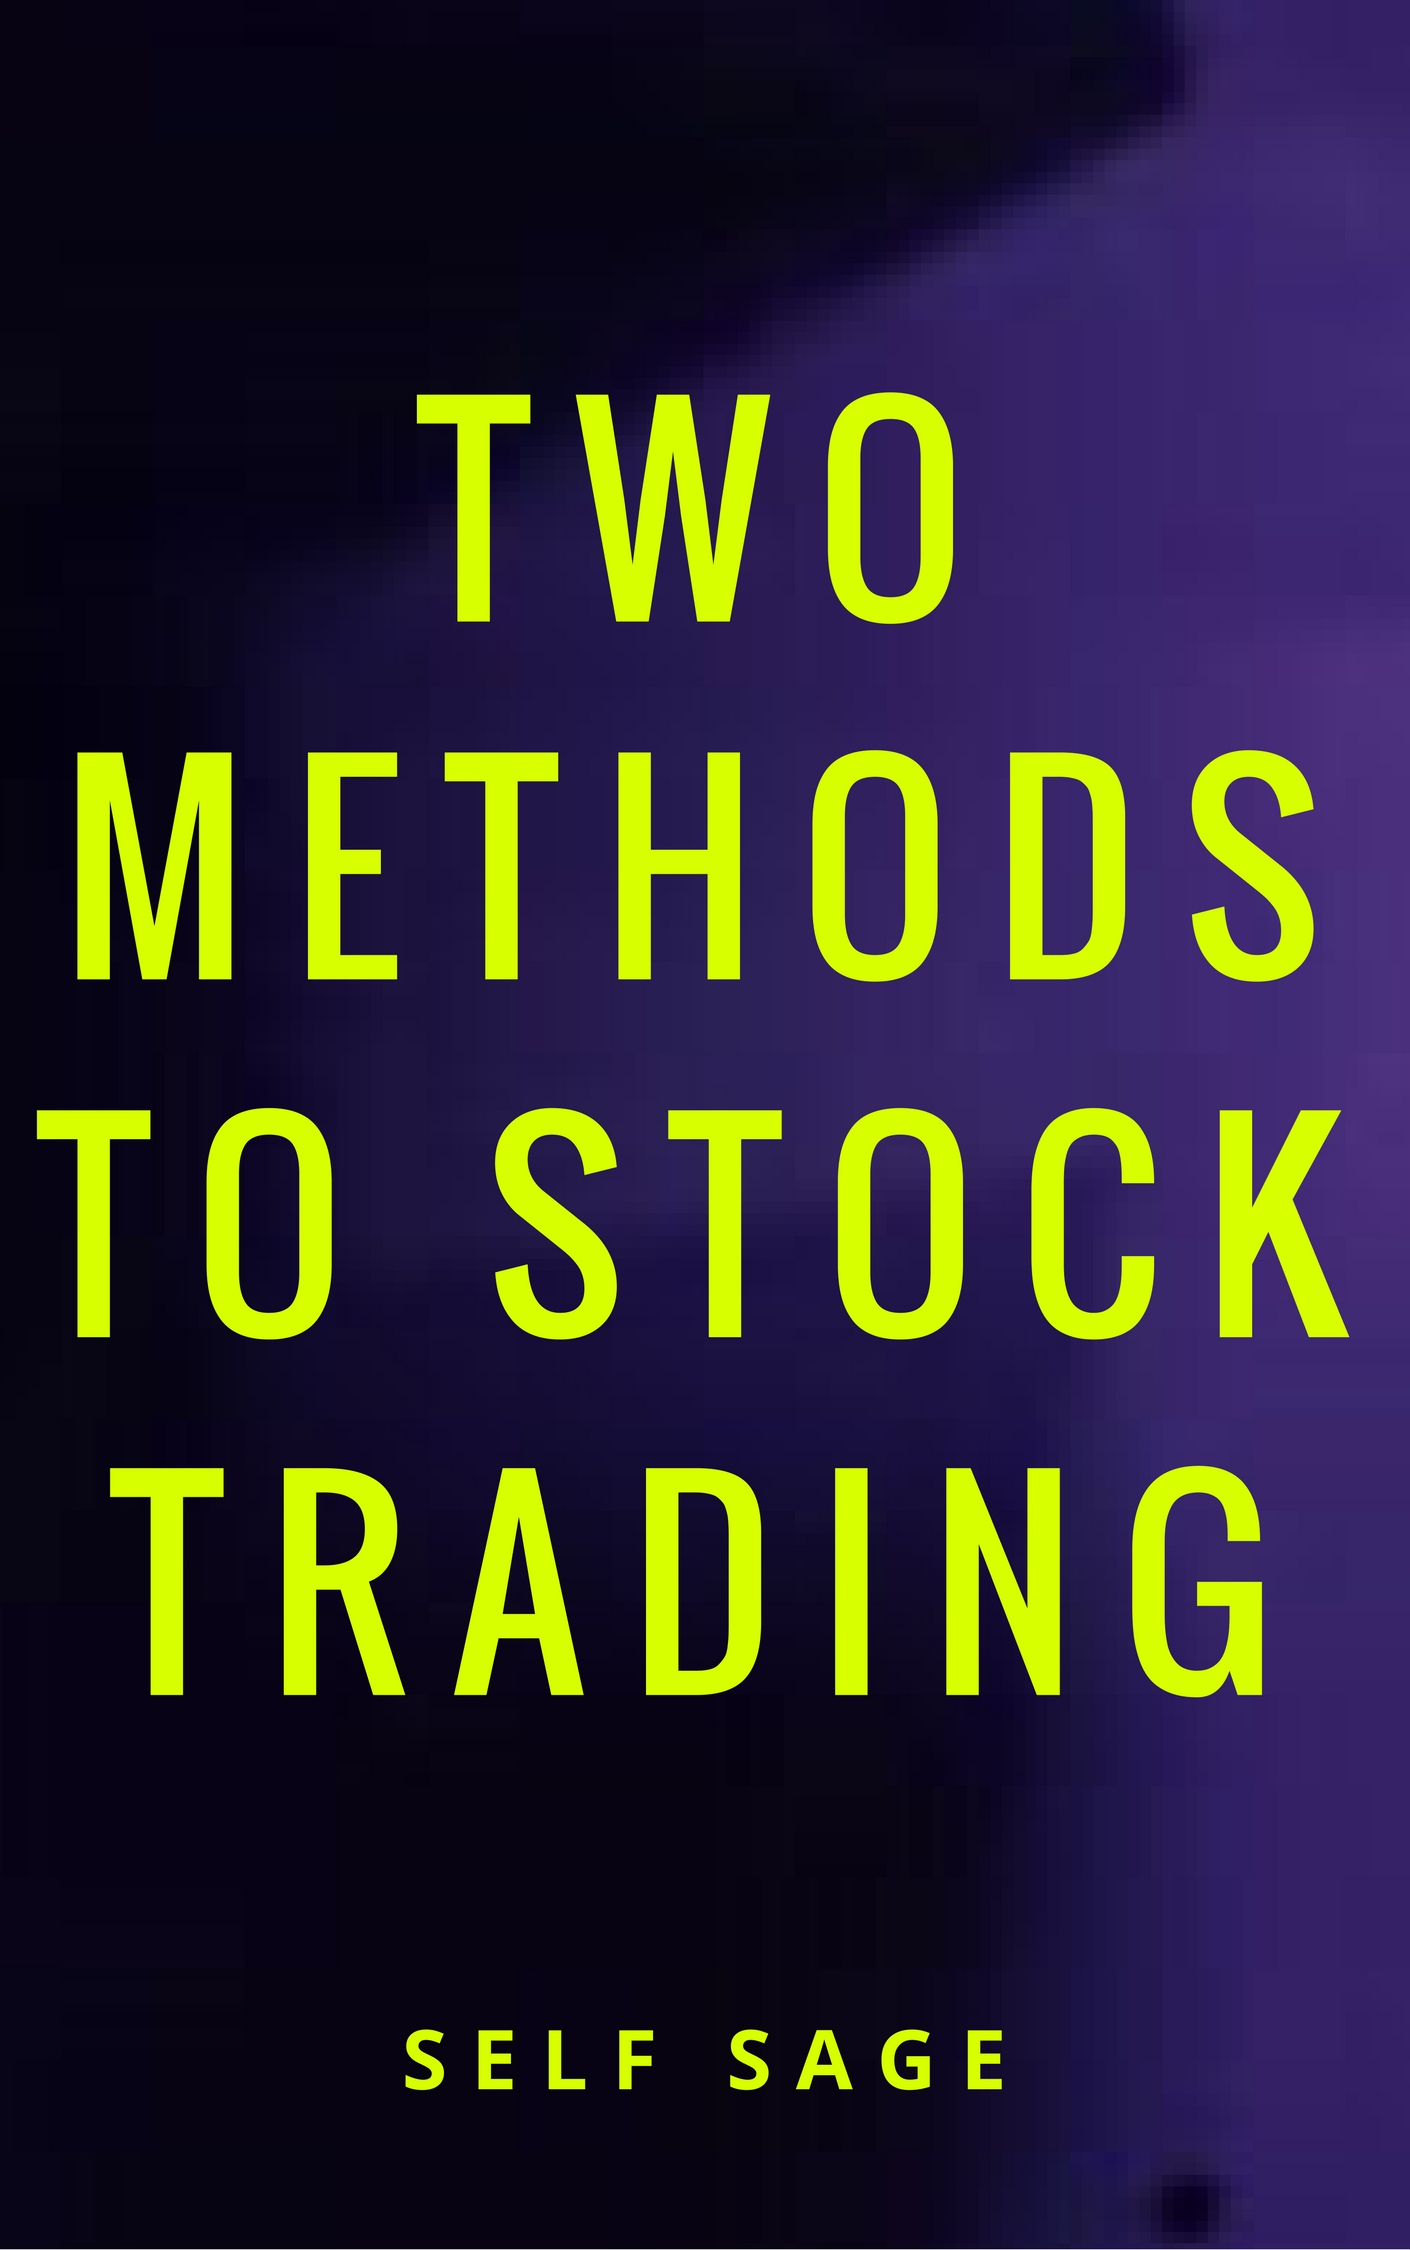 Two methods to stock trading Buy & Sell